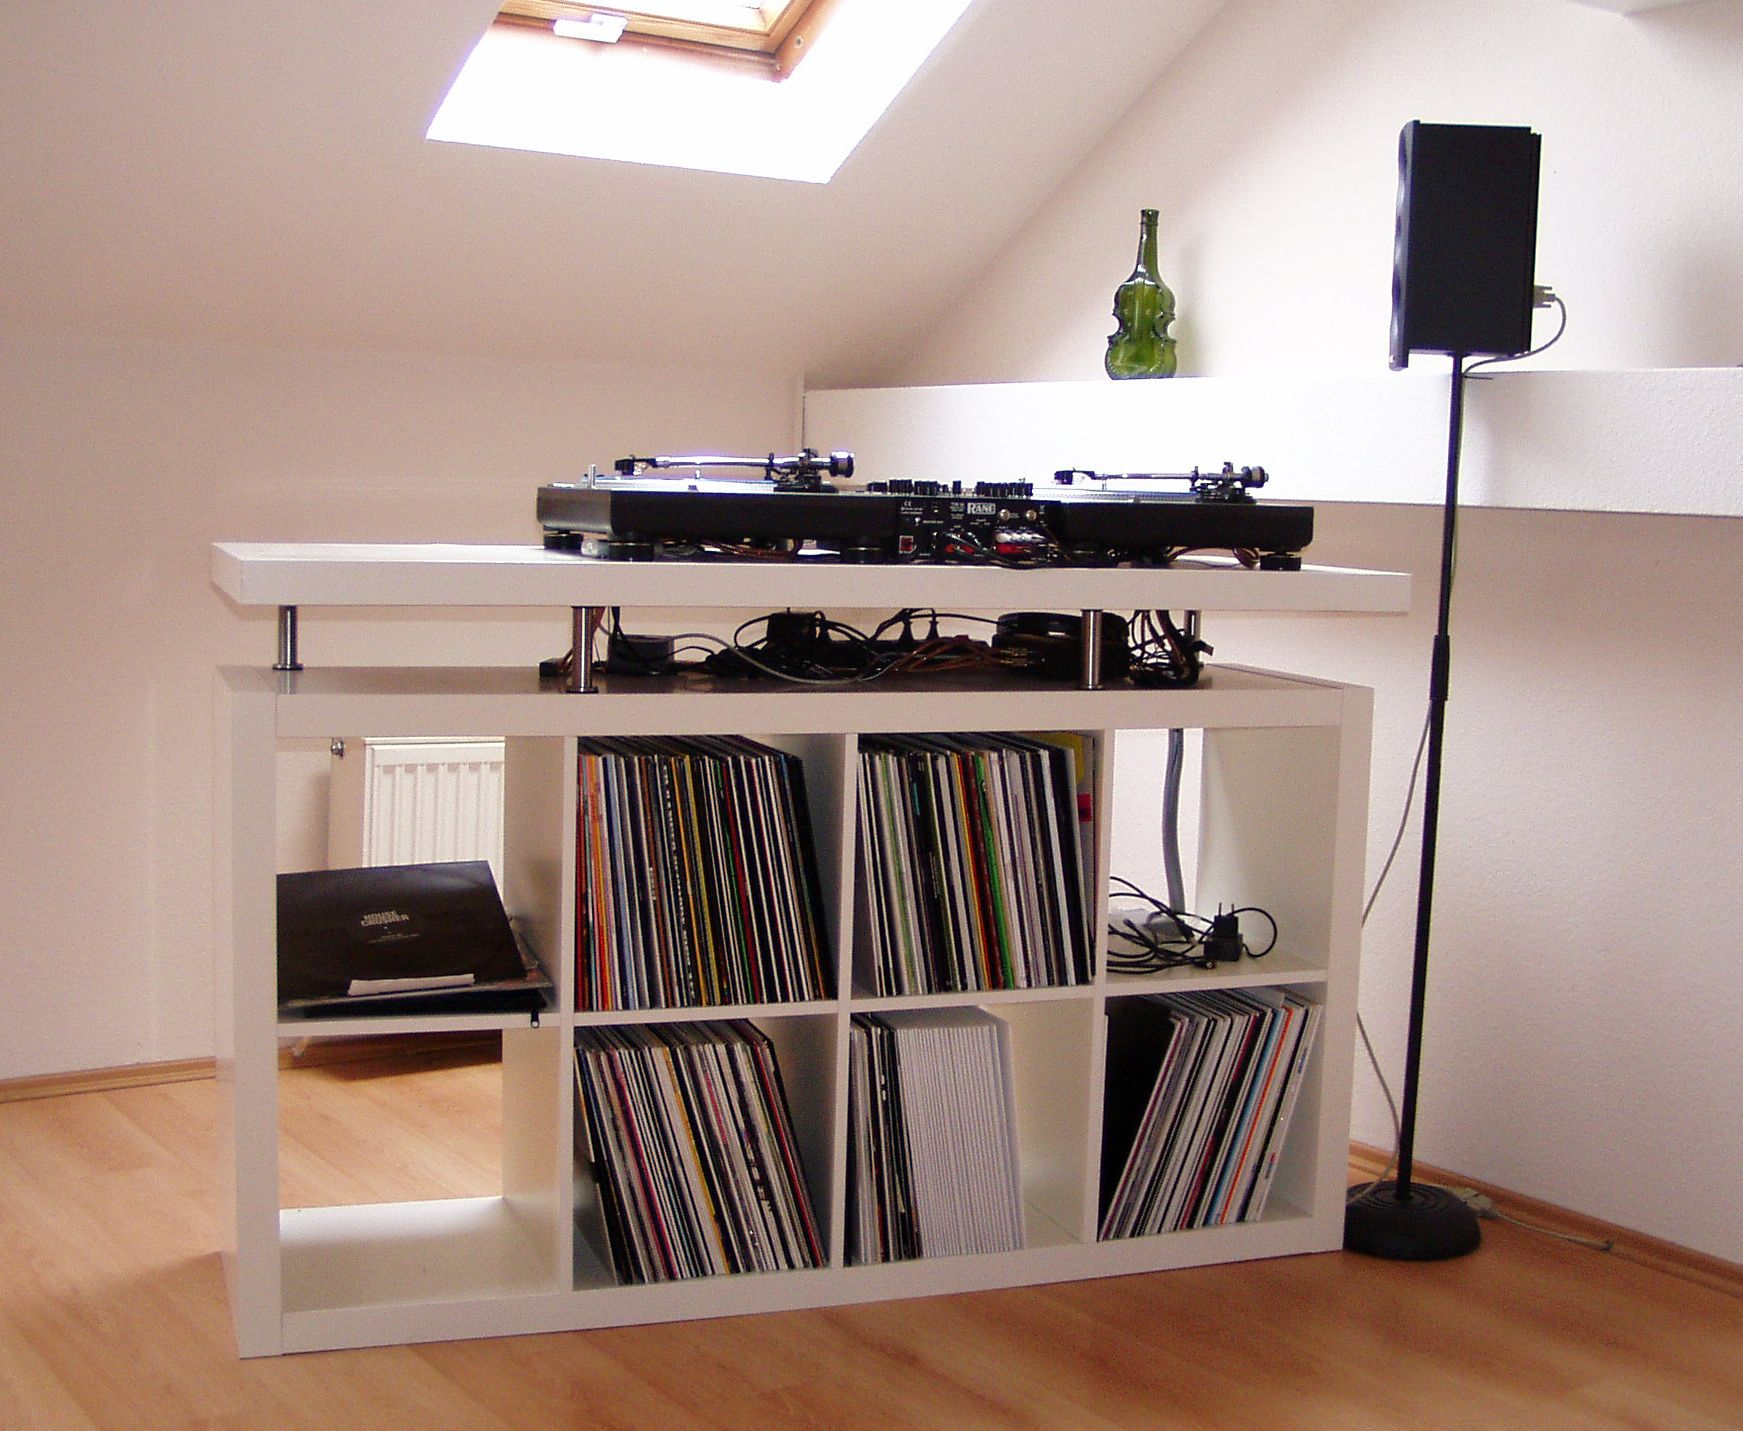 Dj turntable mixing desk stand hey dj pinterest dj - Mobile hi fi ikea ...